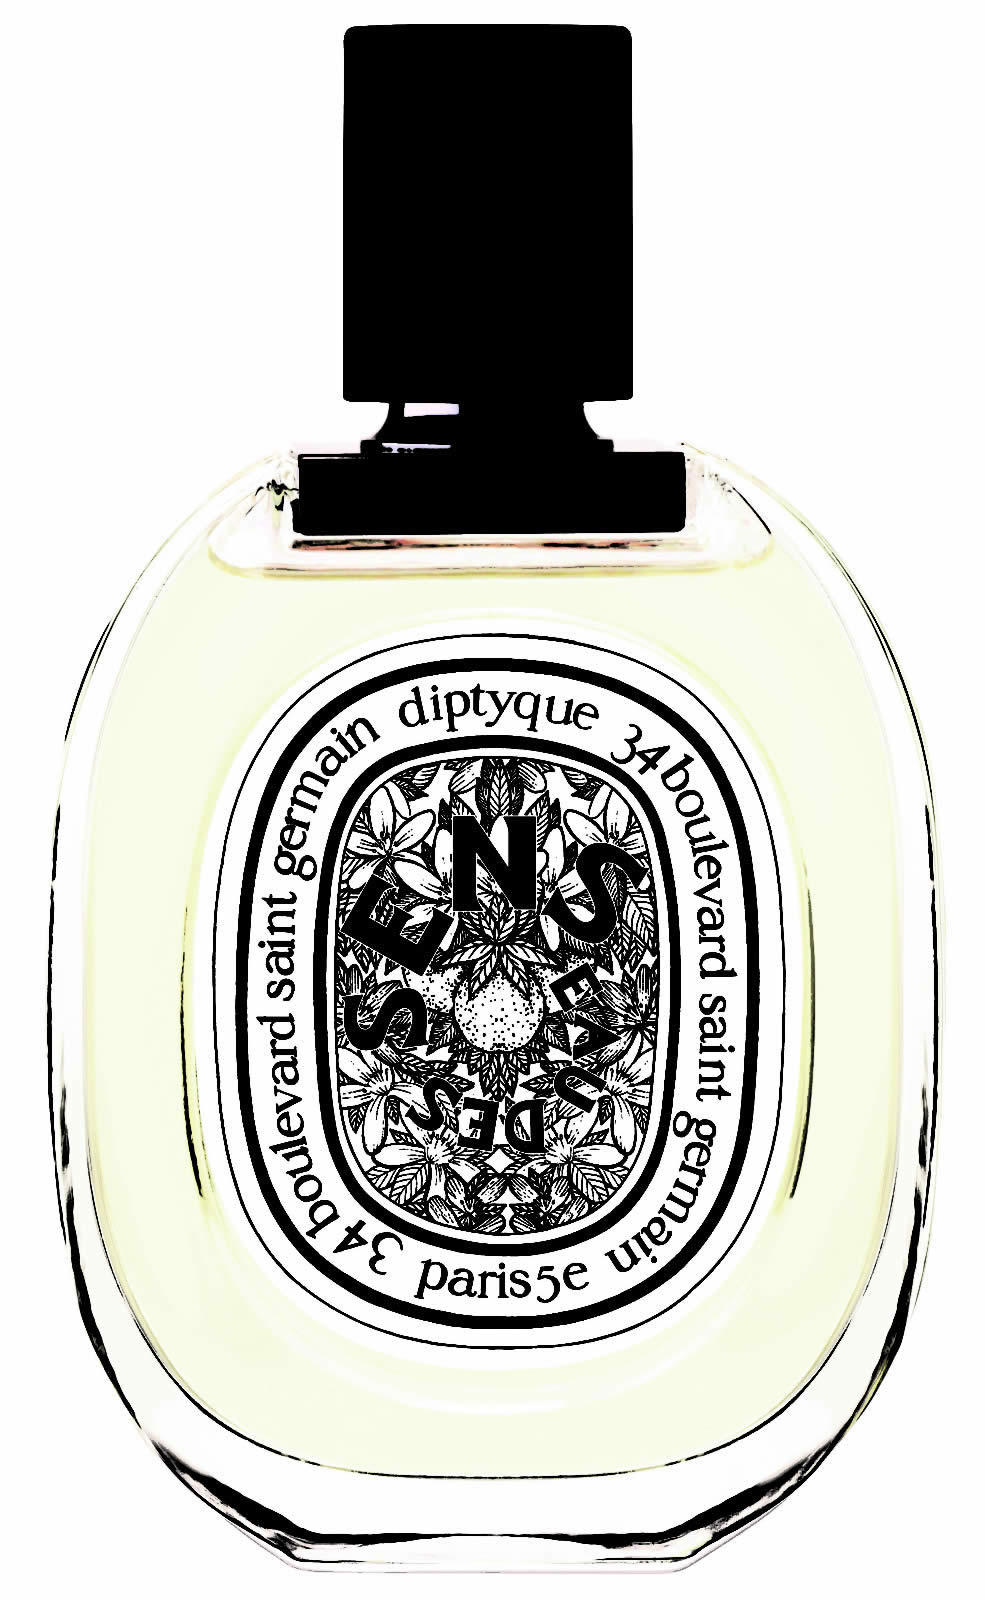 Diptyque : Creator of Perfumes, Candles and Beauty Treatments in Paris